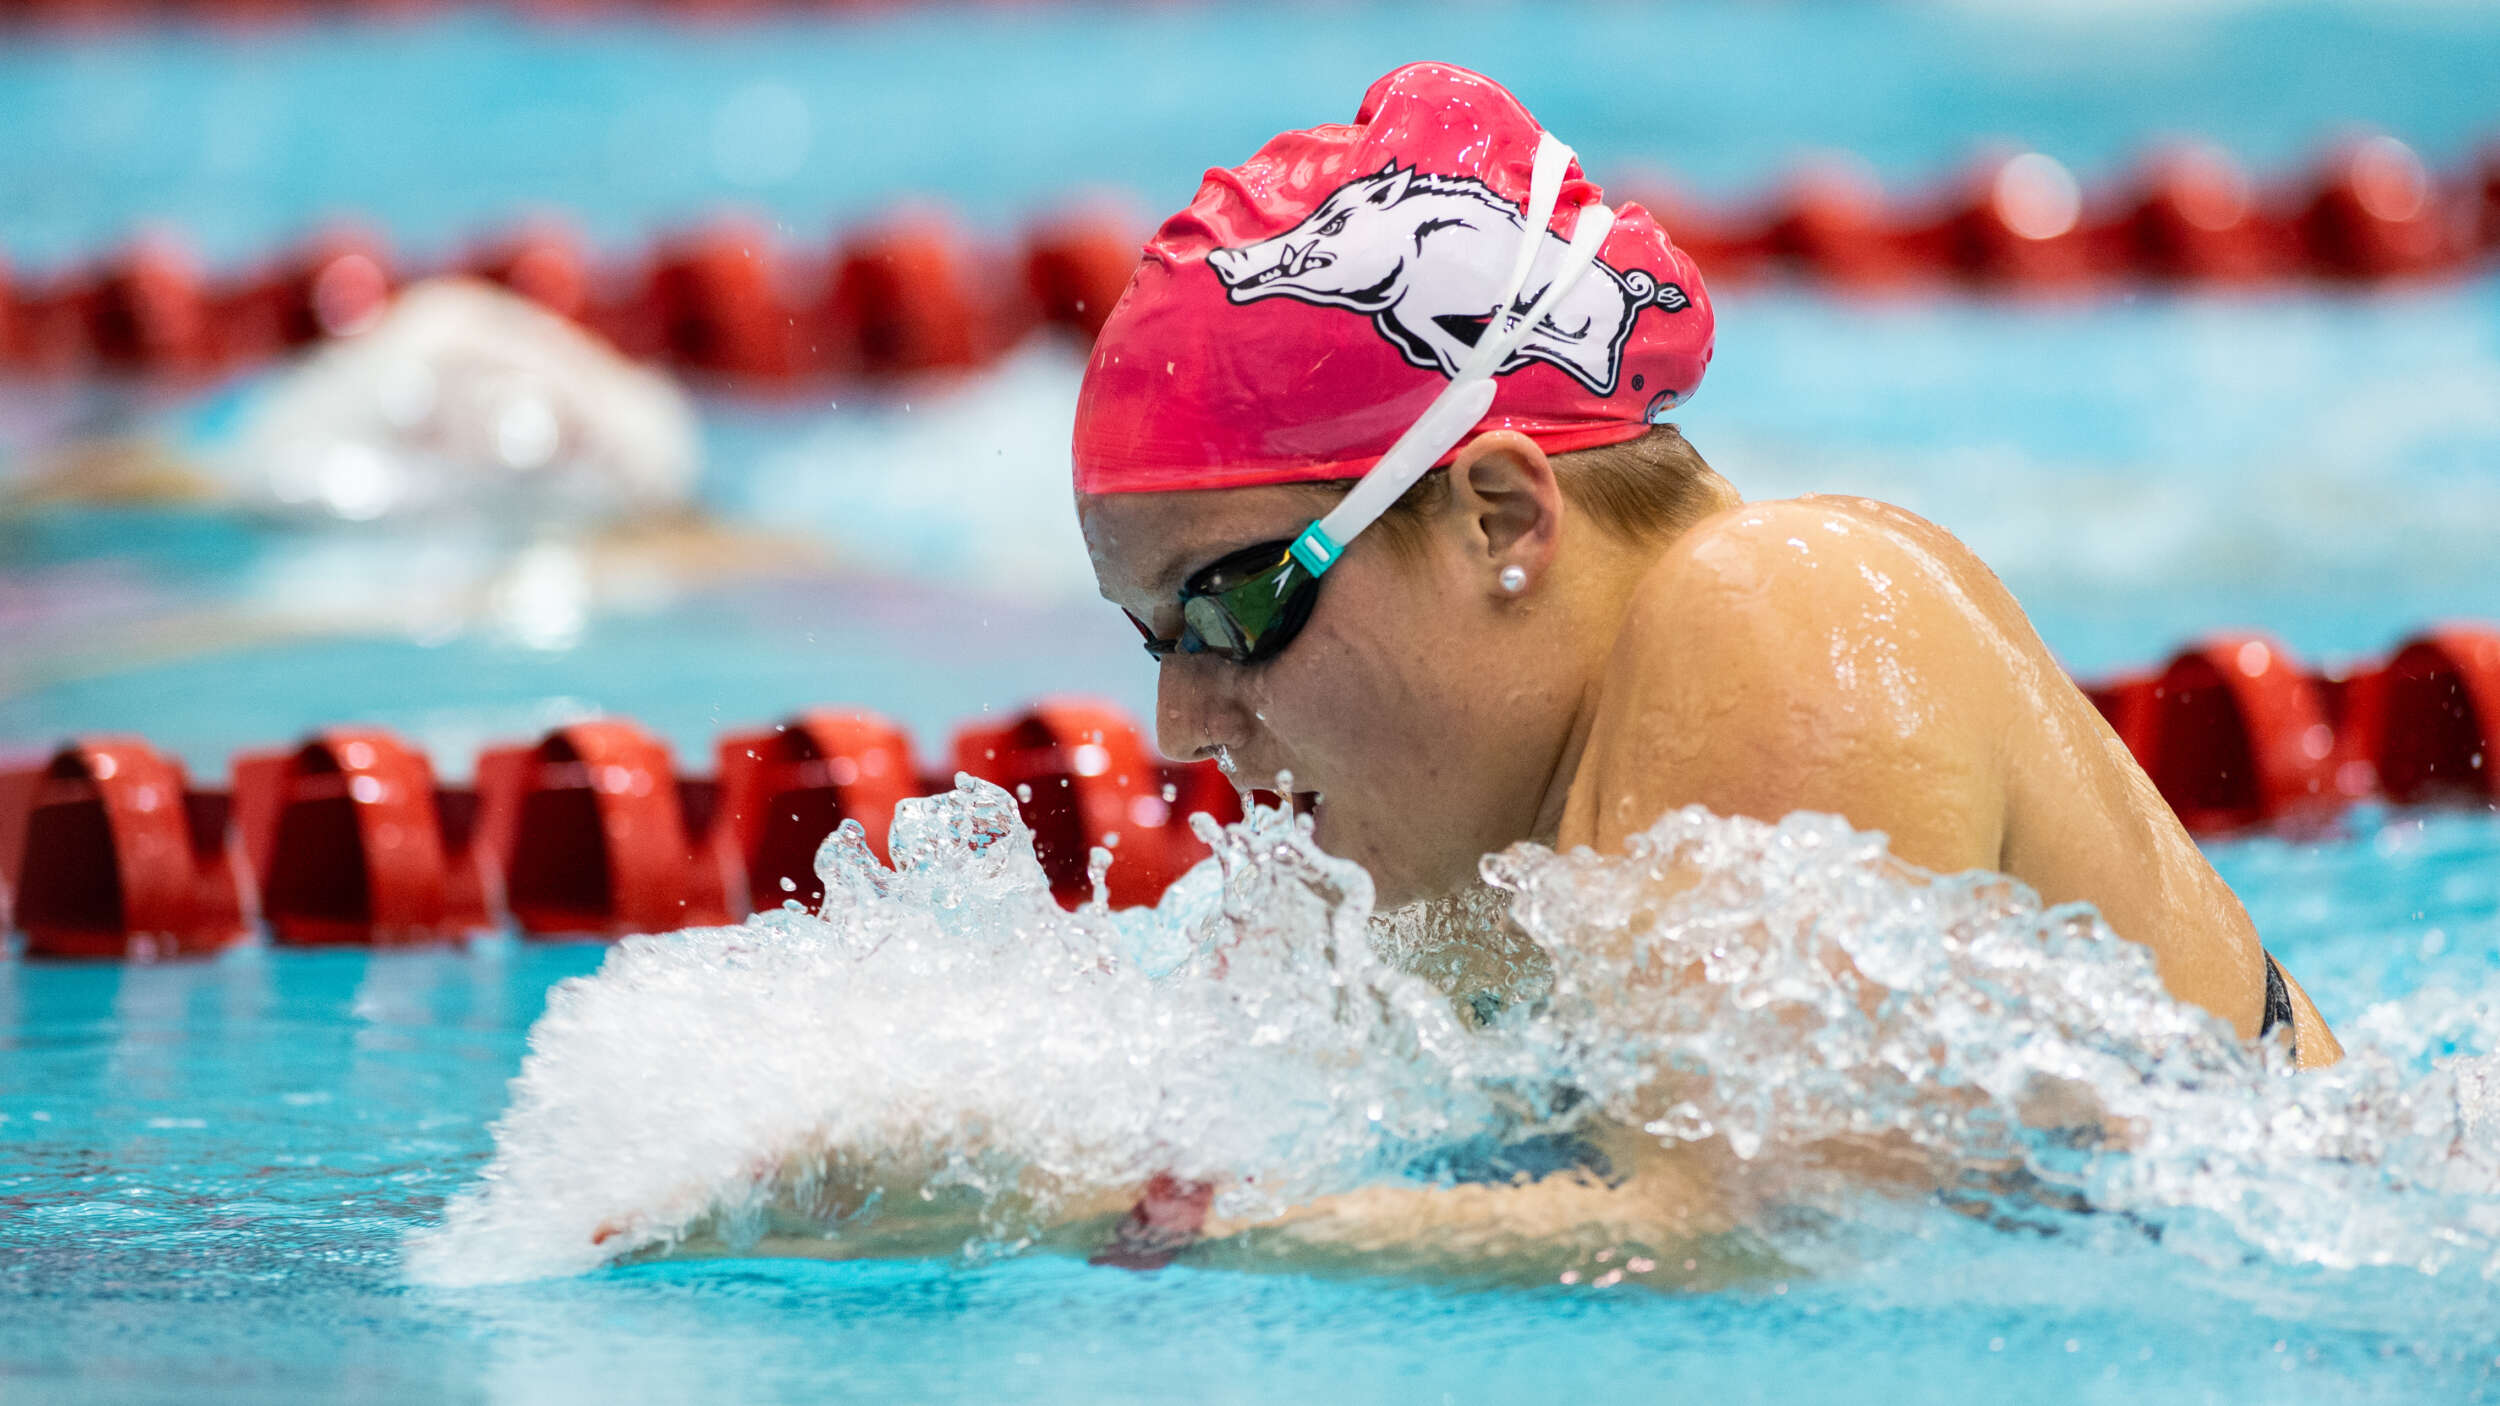 Swimming & Diving earn CSCAA Scholar All-America Team honor